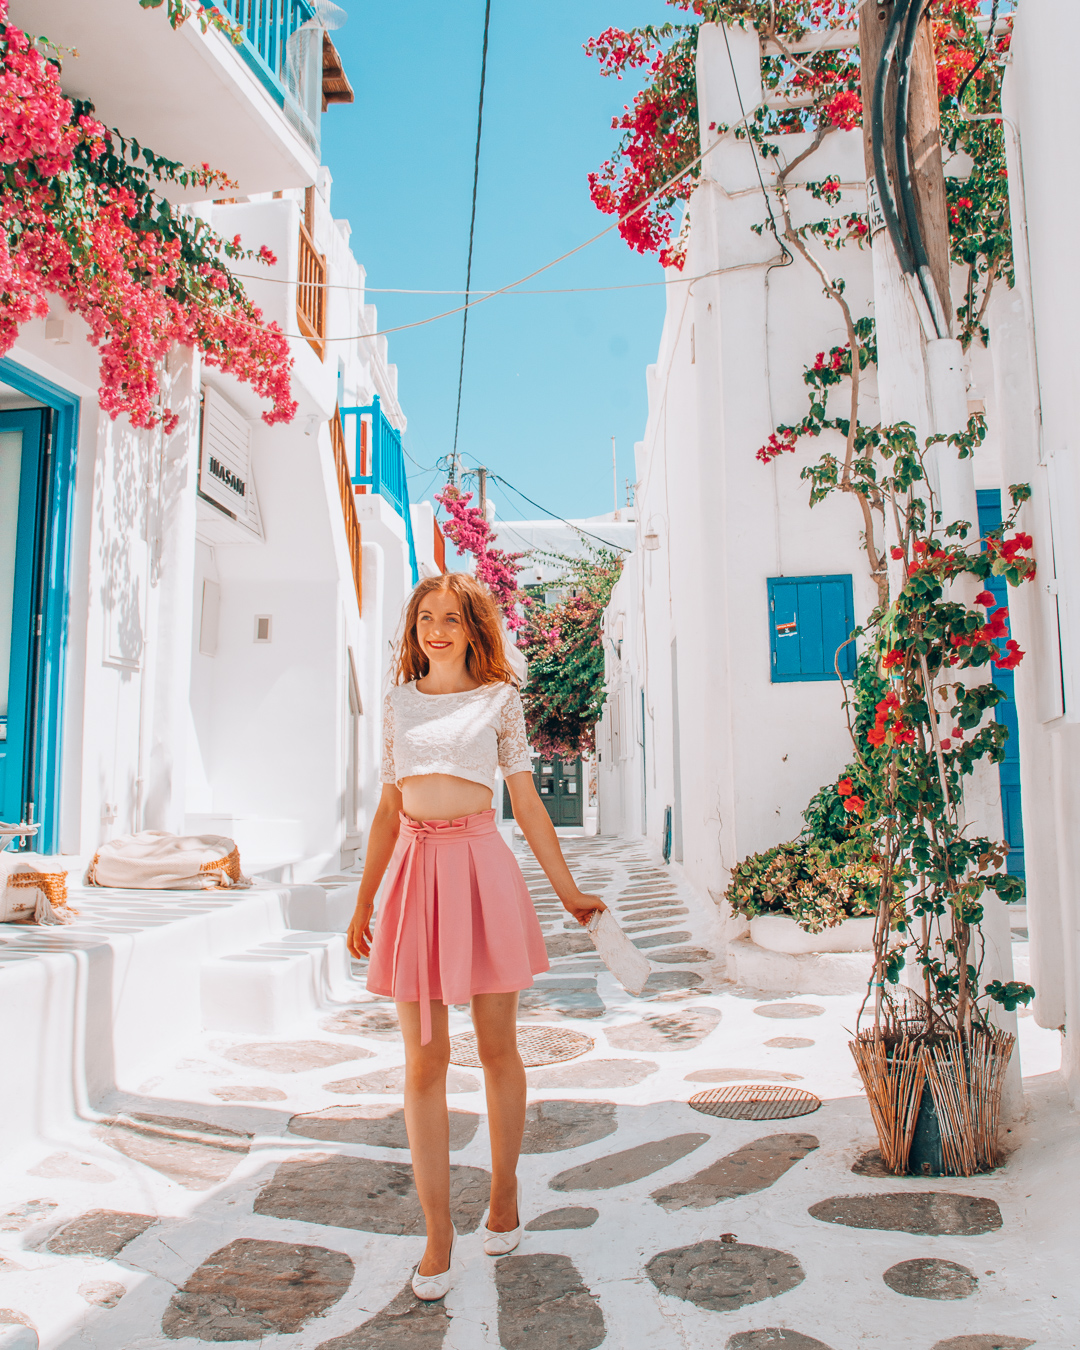 Happy girl in a colourful street with flowers